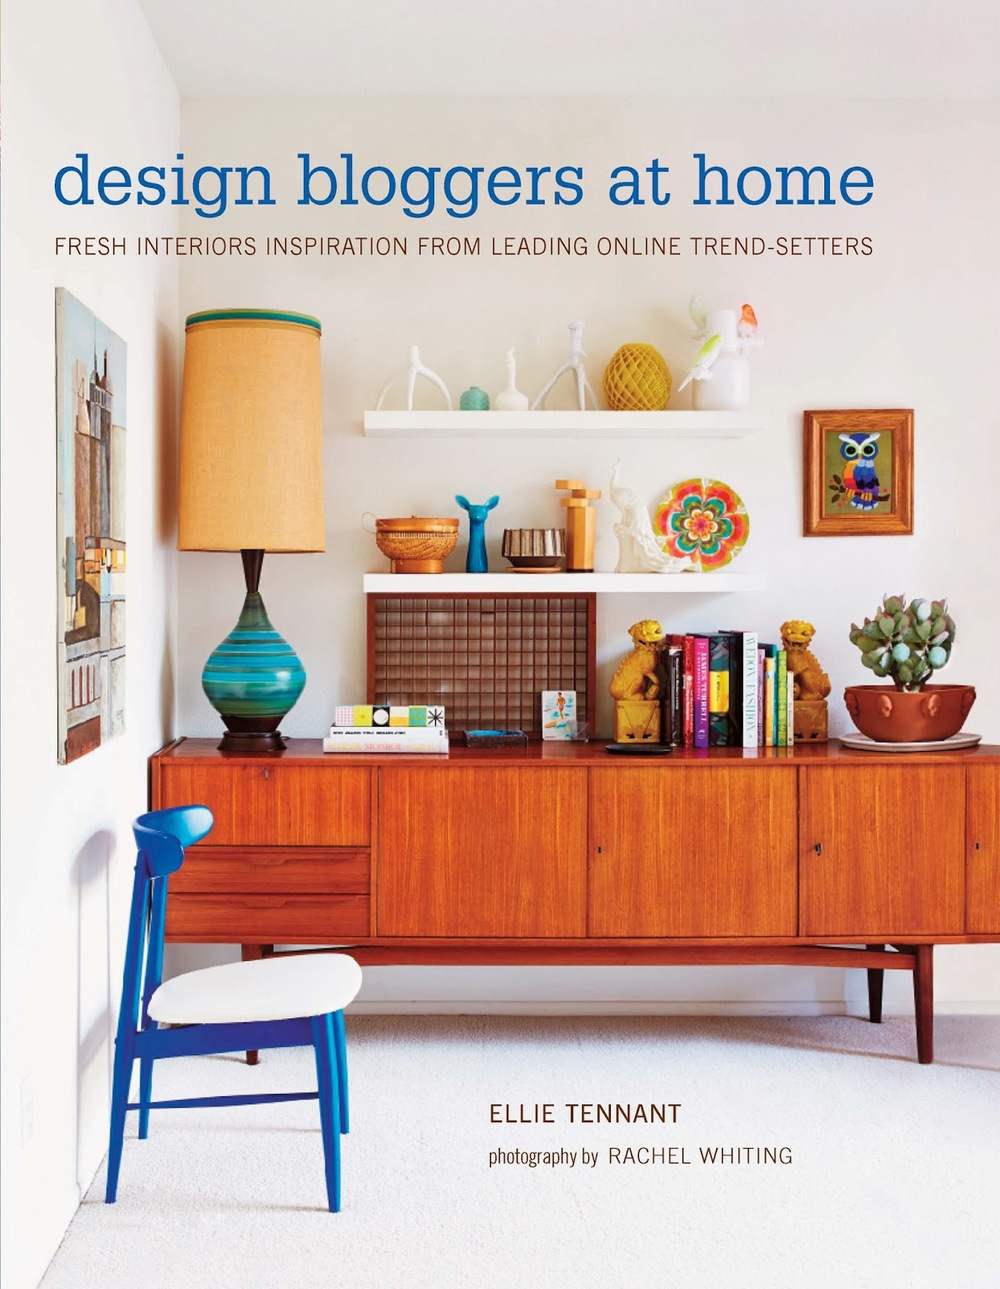 Design Bloggers at Home $39.95